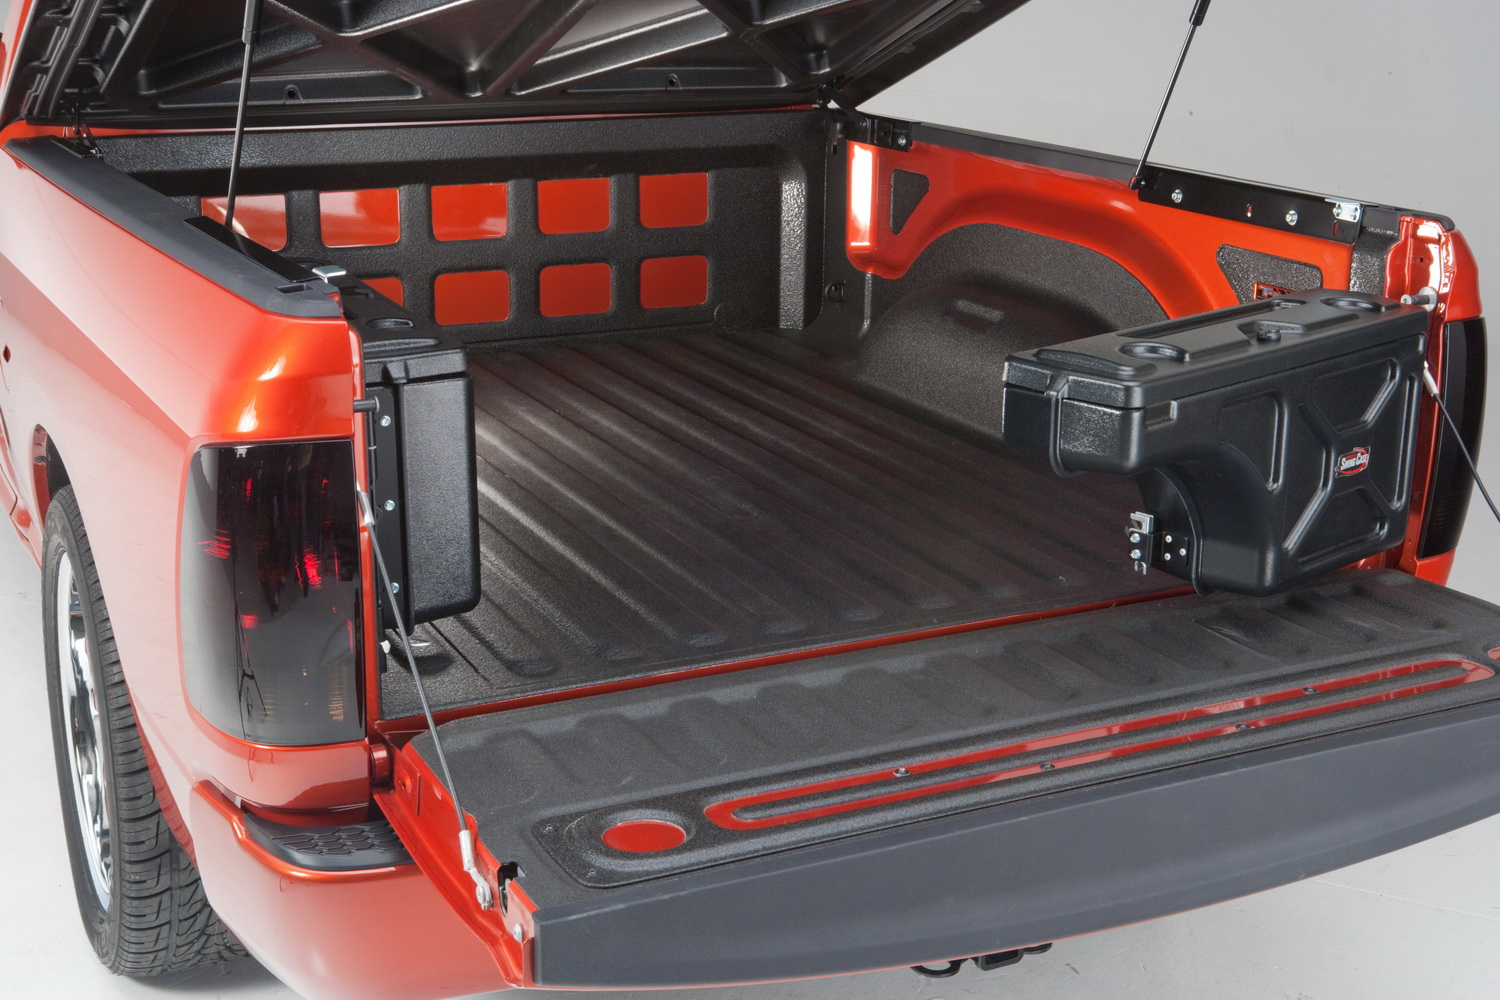 undercover tonneau undercover swing case storage box truck bed